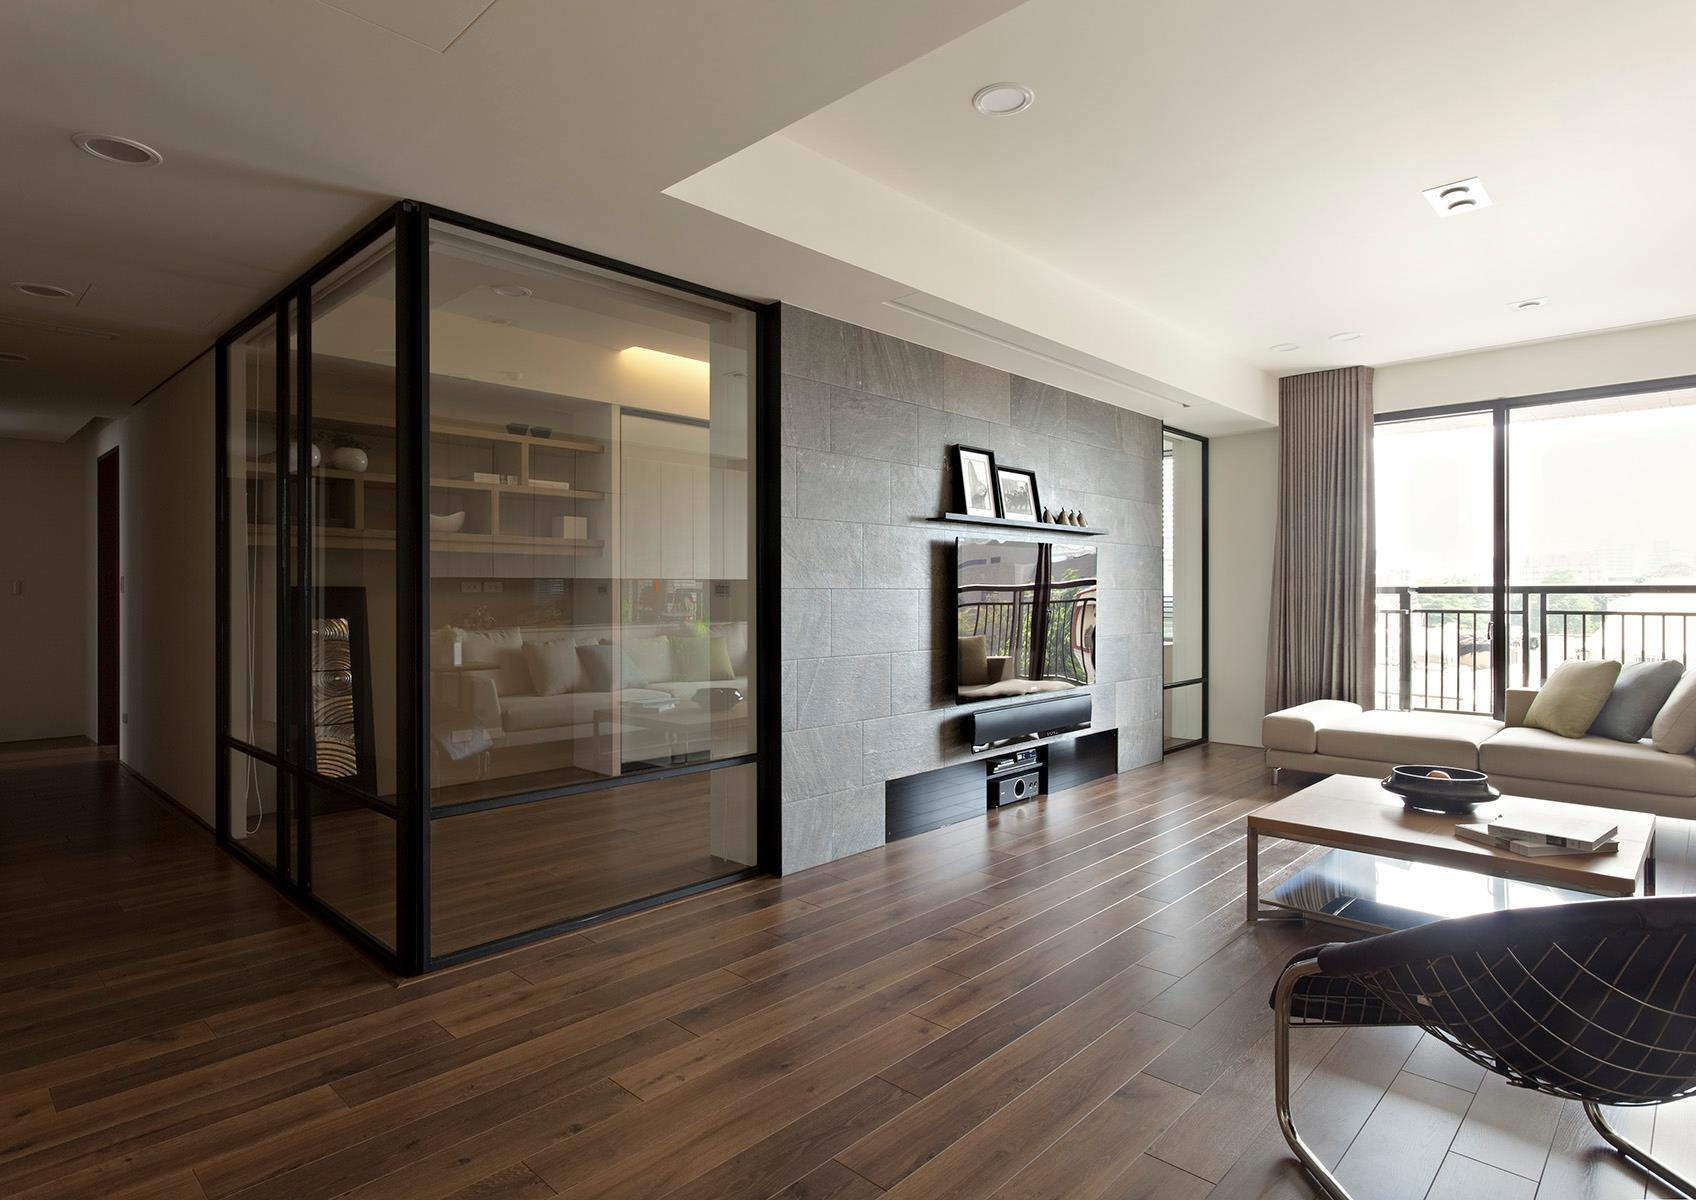 Terrific Apartment With A Retractable Interior Wall Largest Home Design Picture Inspirations Pitcheantrous